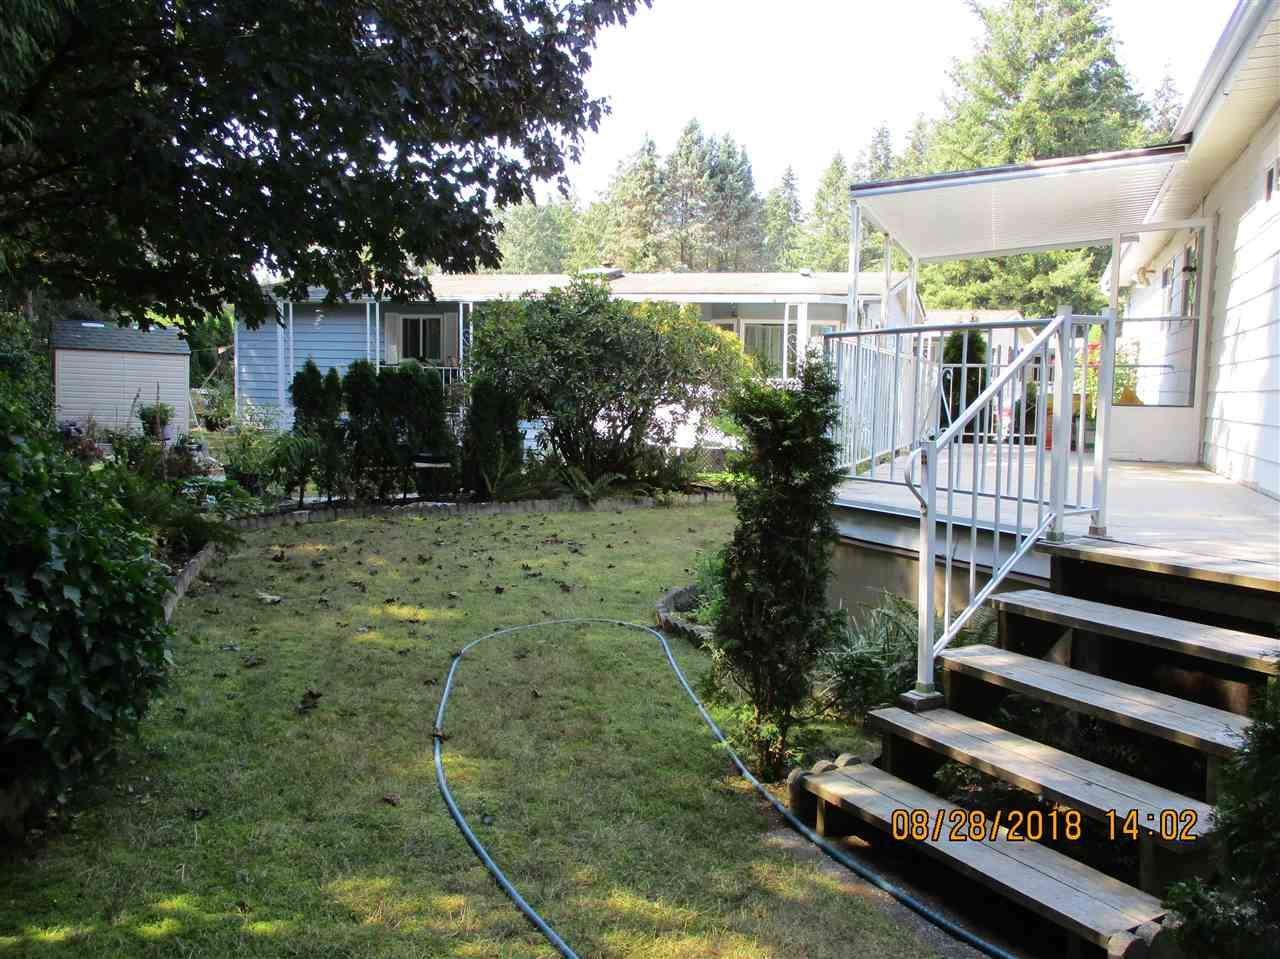 """Photo 19: Photos: 57 2305 200 Street in Langley: Brookswood Langley Manufactured Home for sale in """"CEDAR LANE"""" : MLS®# R2357125"""